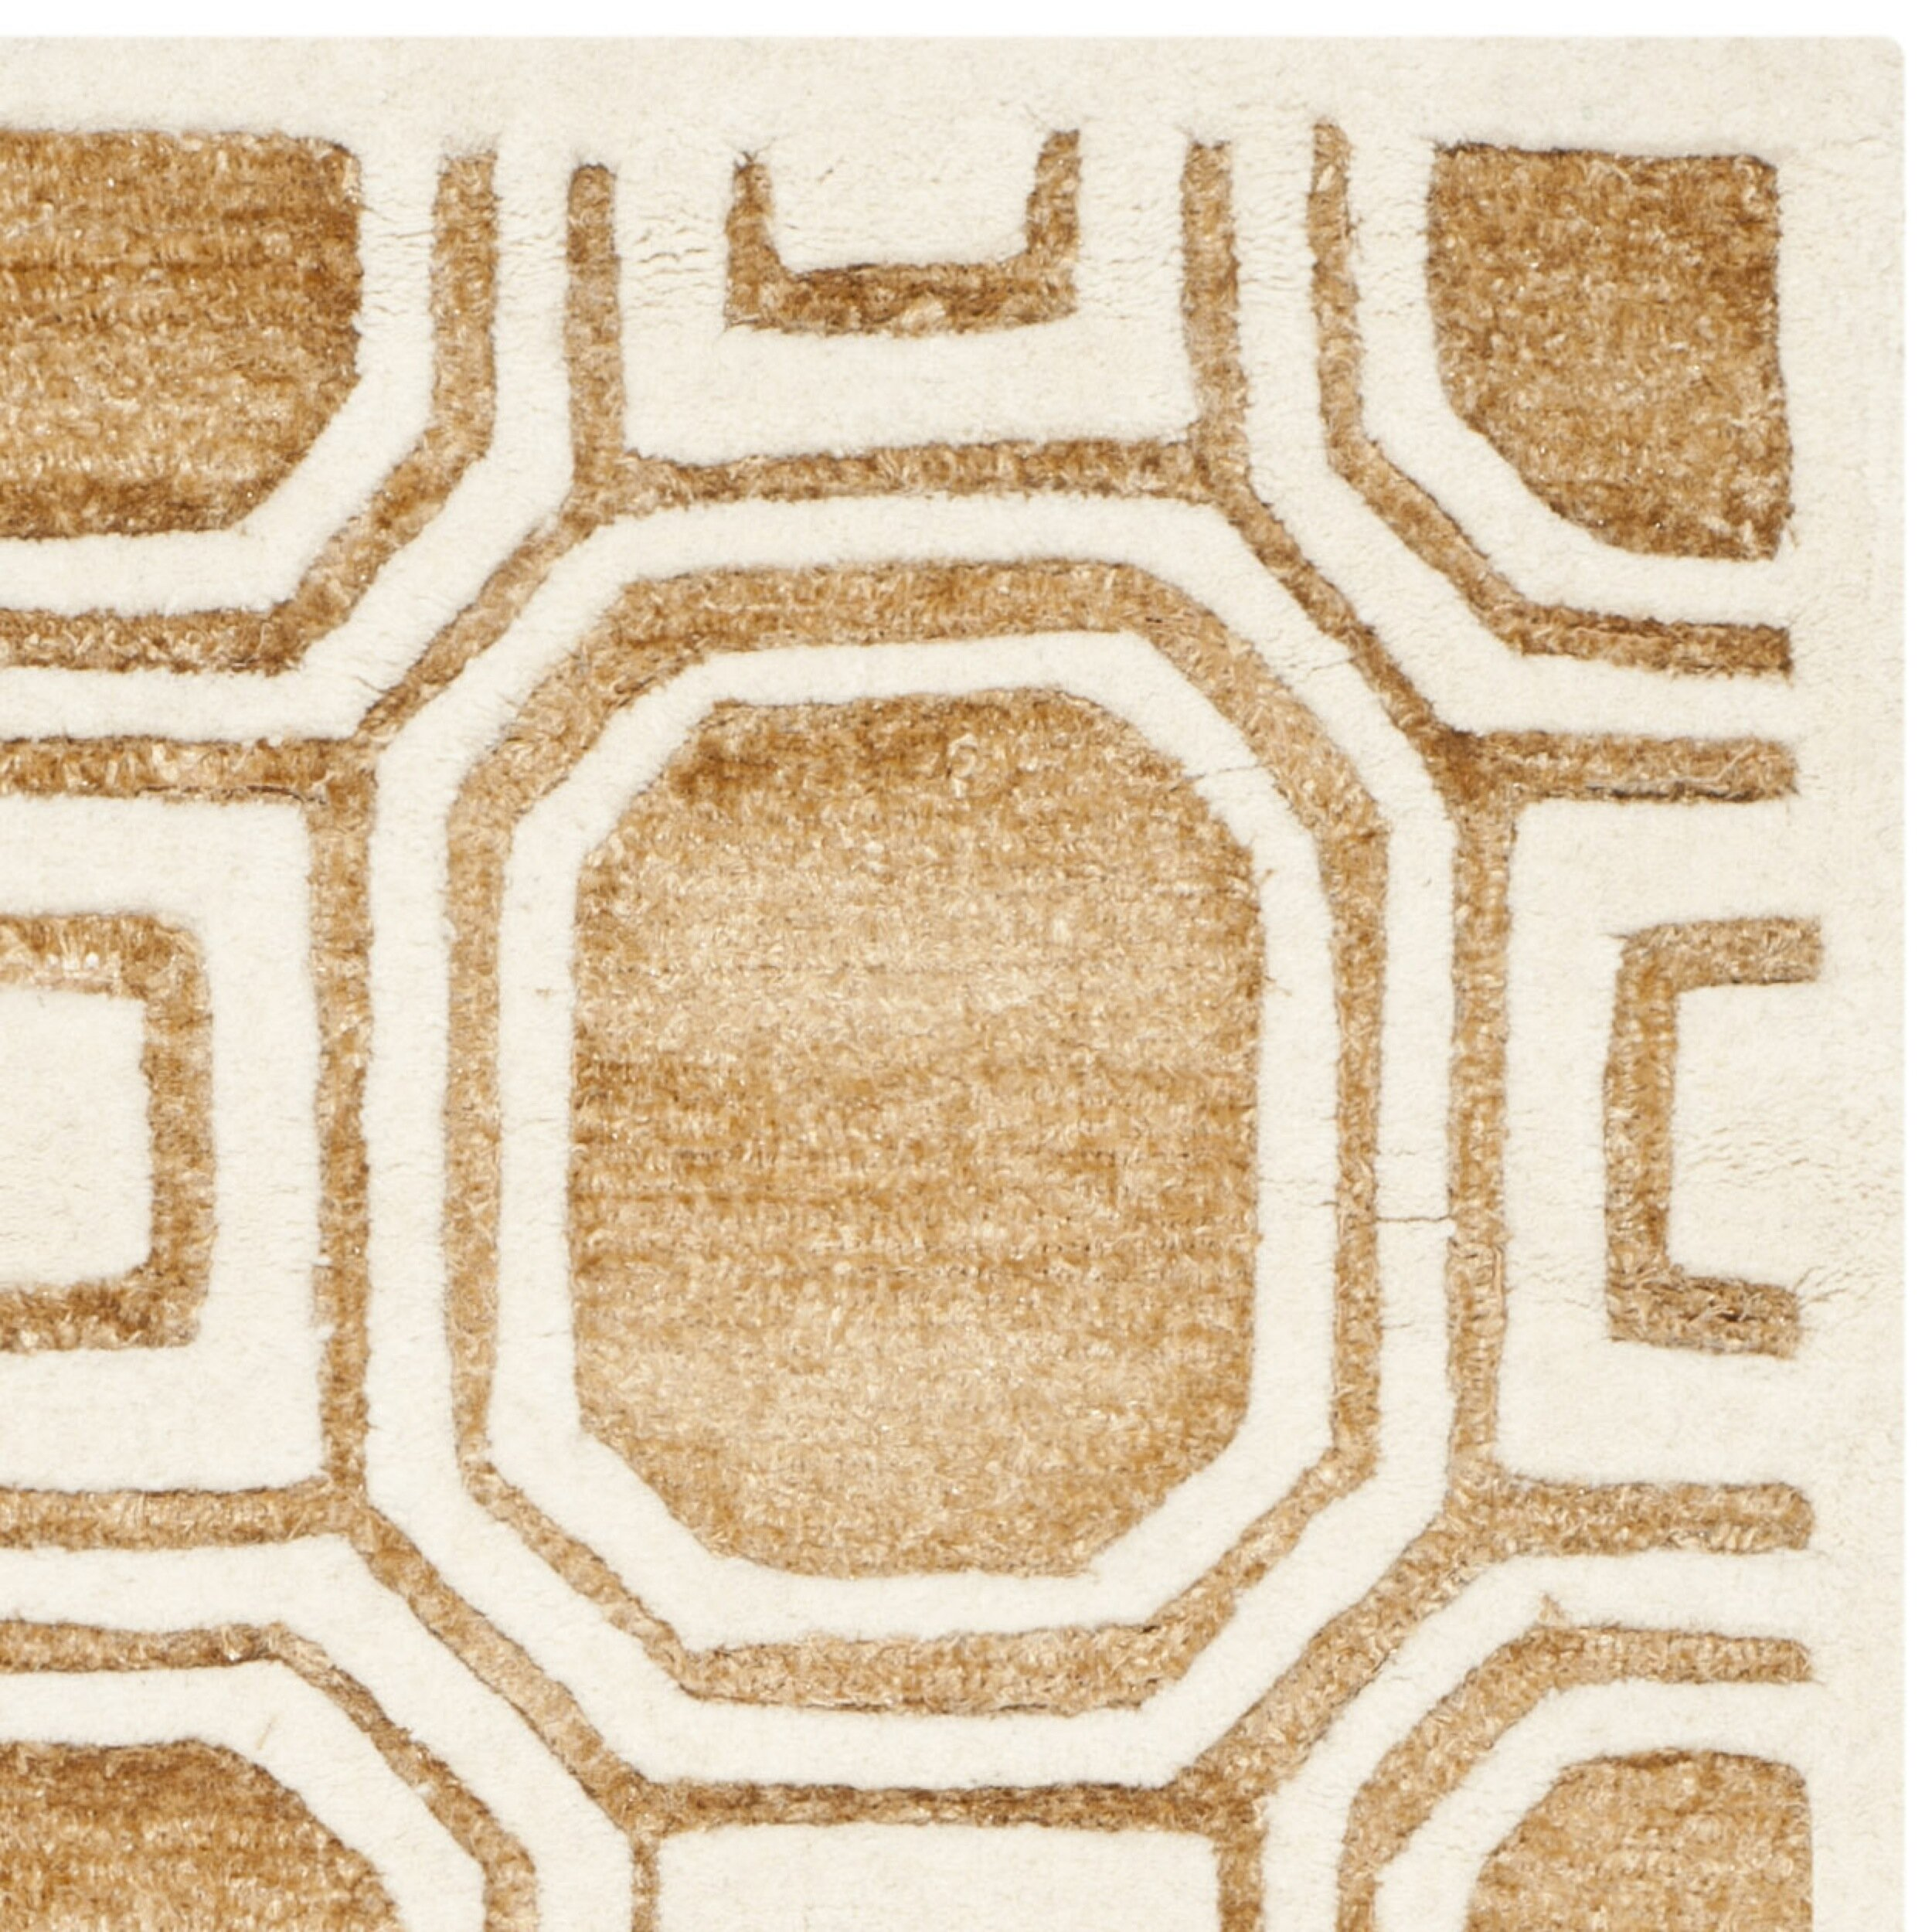 dwellstudio senoia area rug reviews wayfair